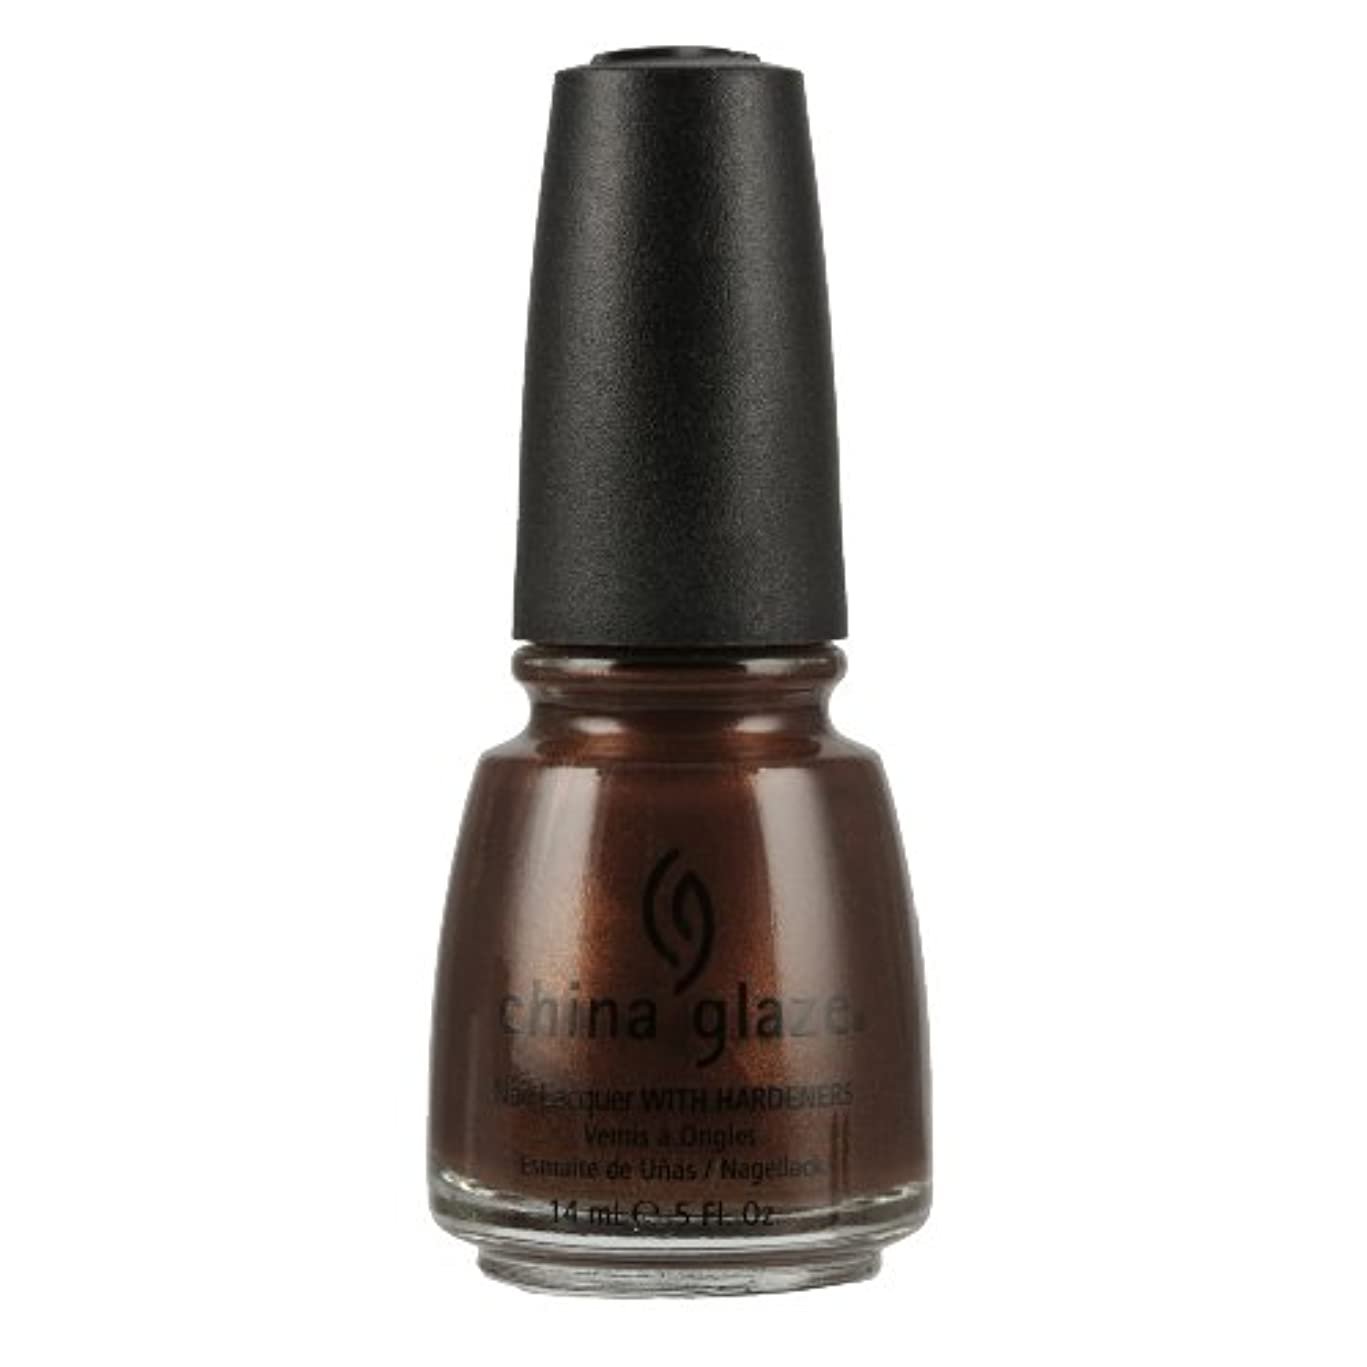 経営者利用可能オセアニアCHINA GLAZE Nail Lacquer with Nail Hardner 2 - Unplugged (並行輸入品)